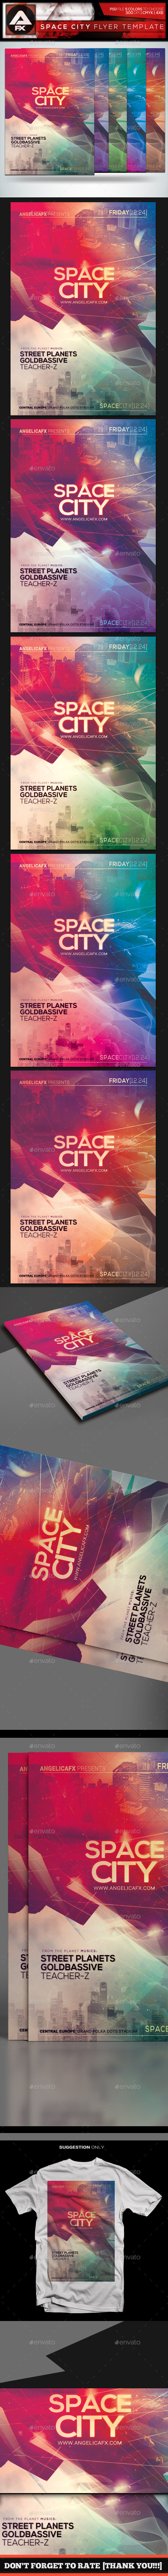 Space City Flyer Template - Flyers Print Templates